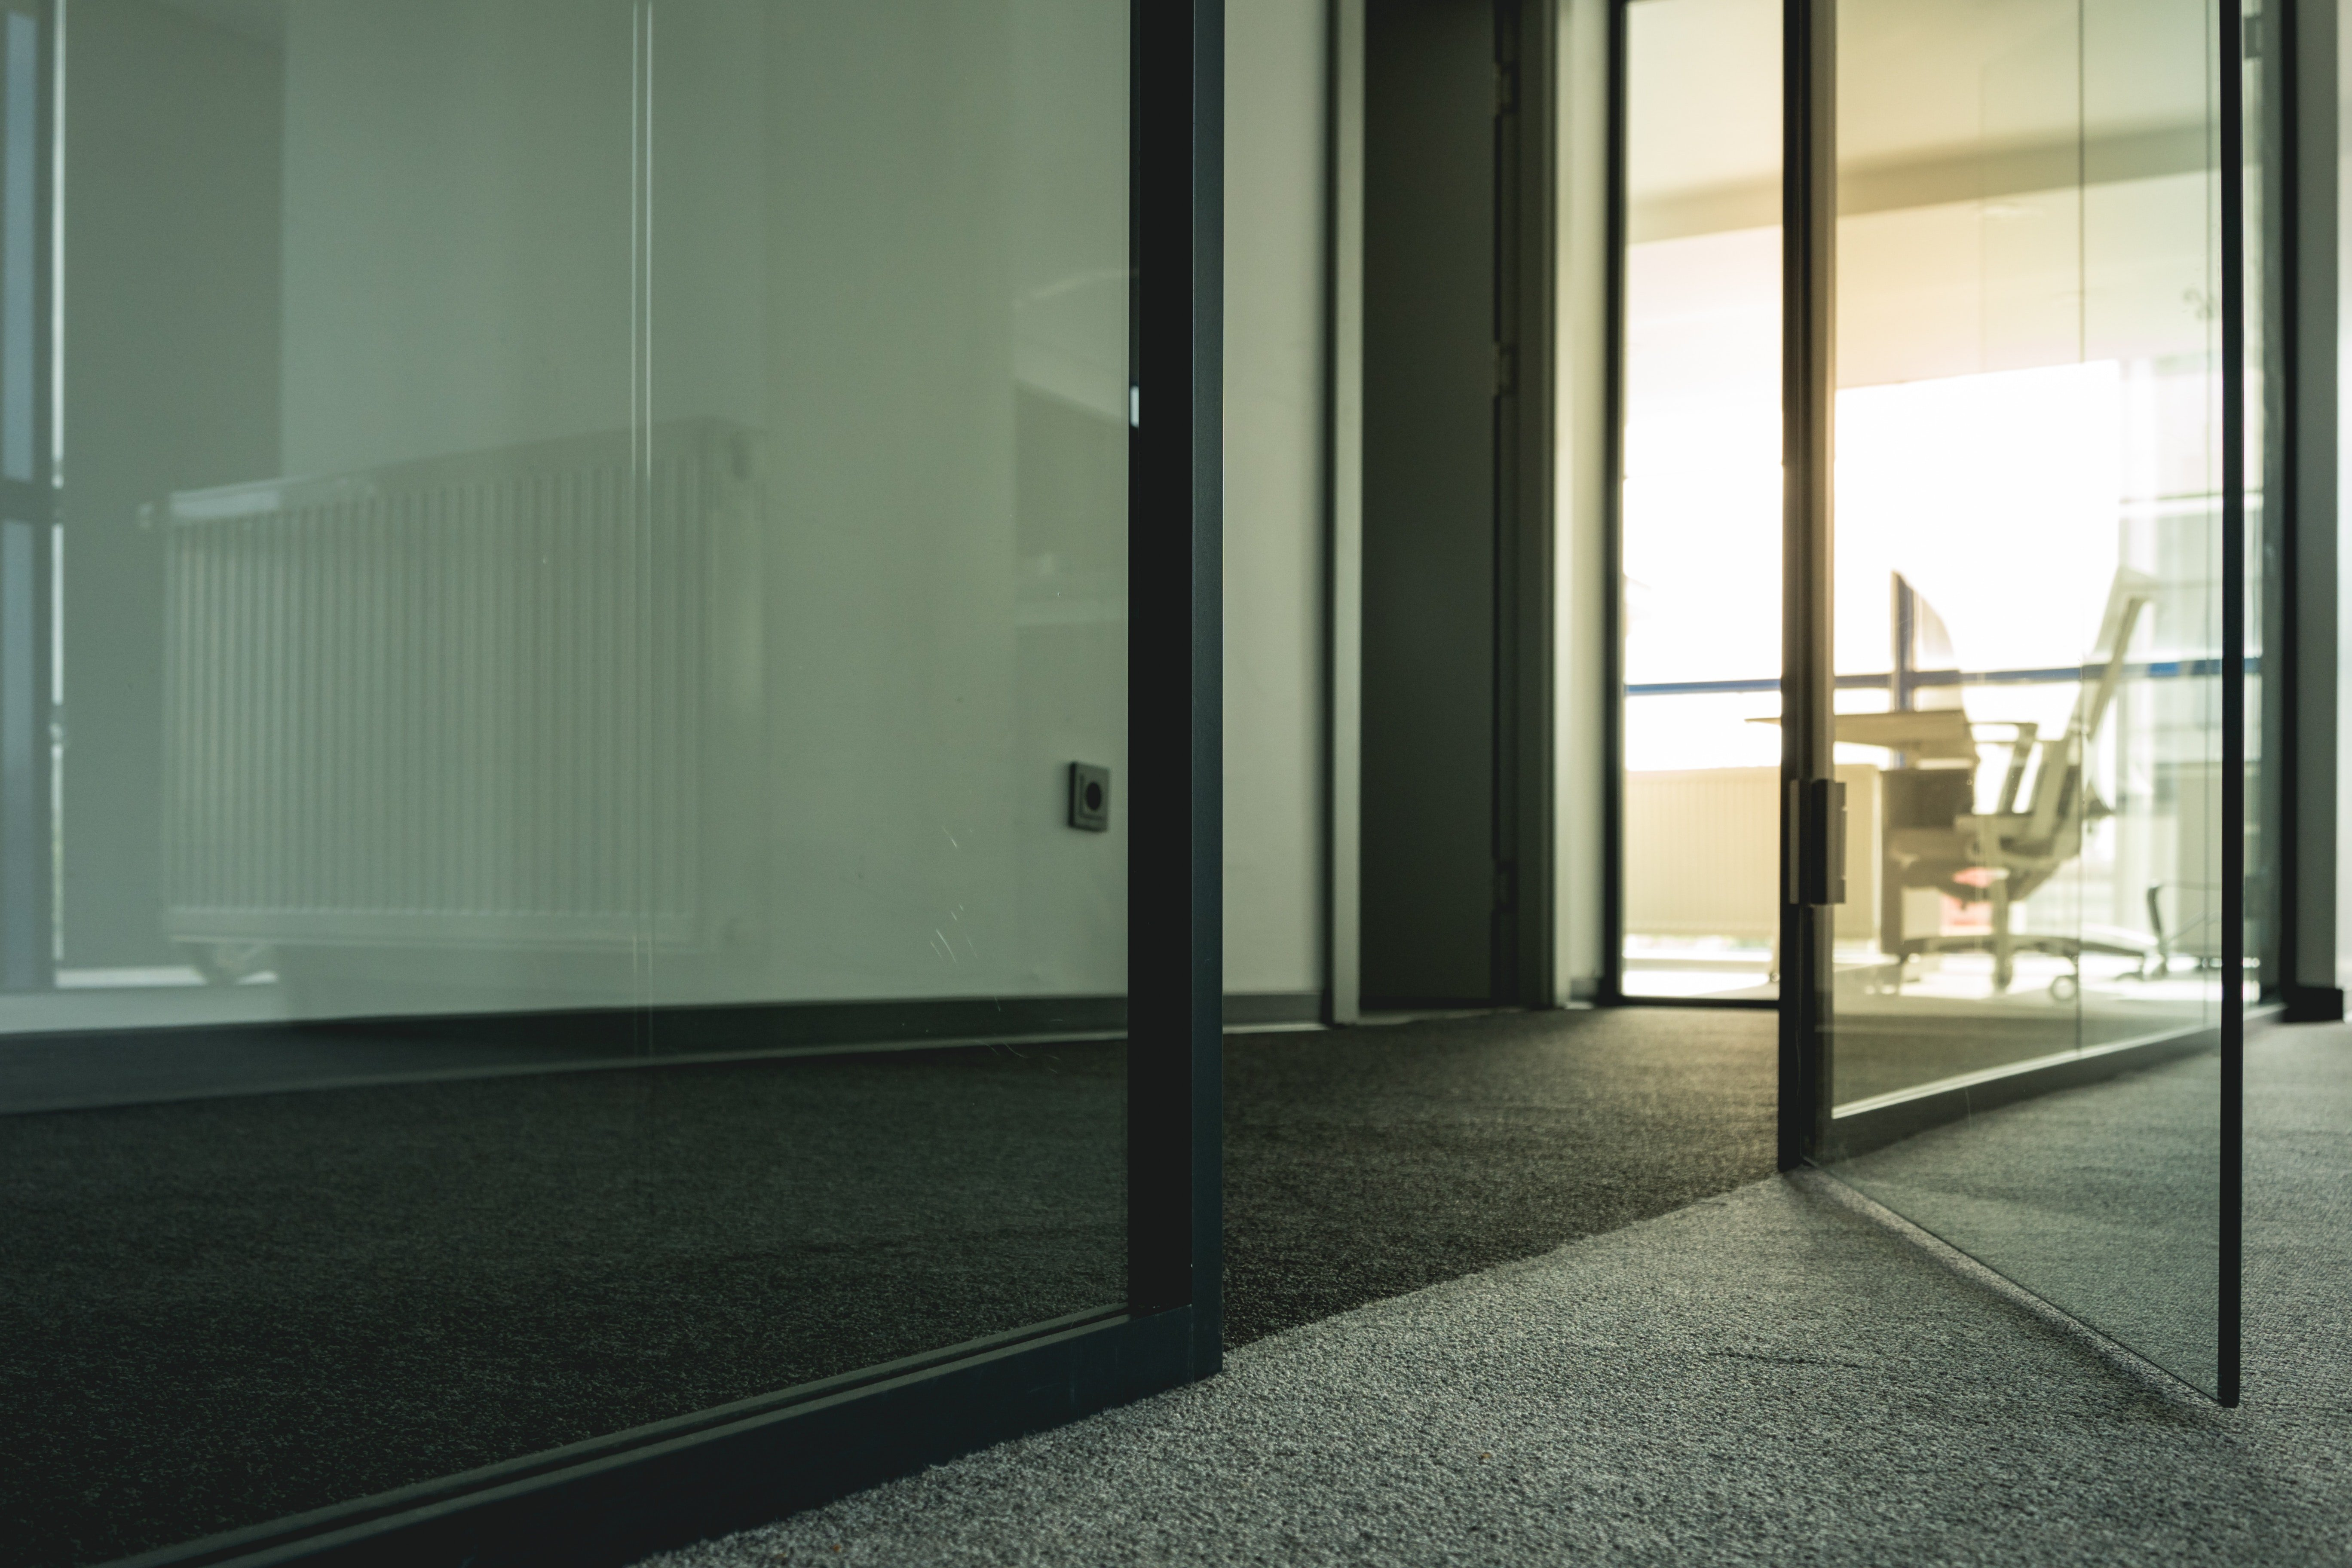 carpet-contemporary-daylight-1098982